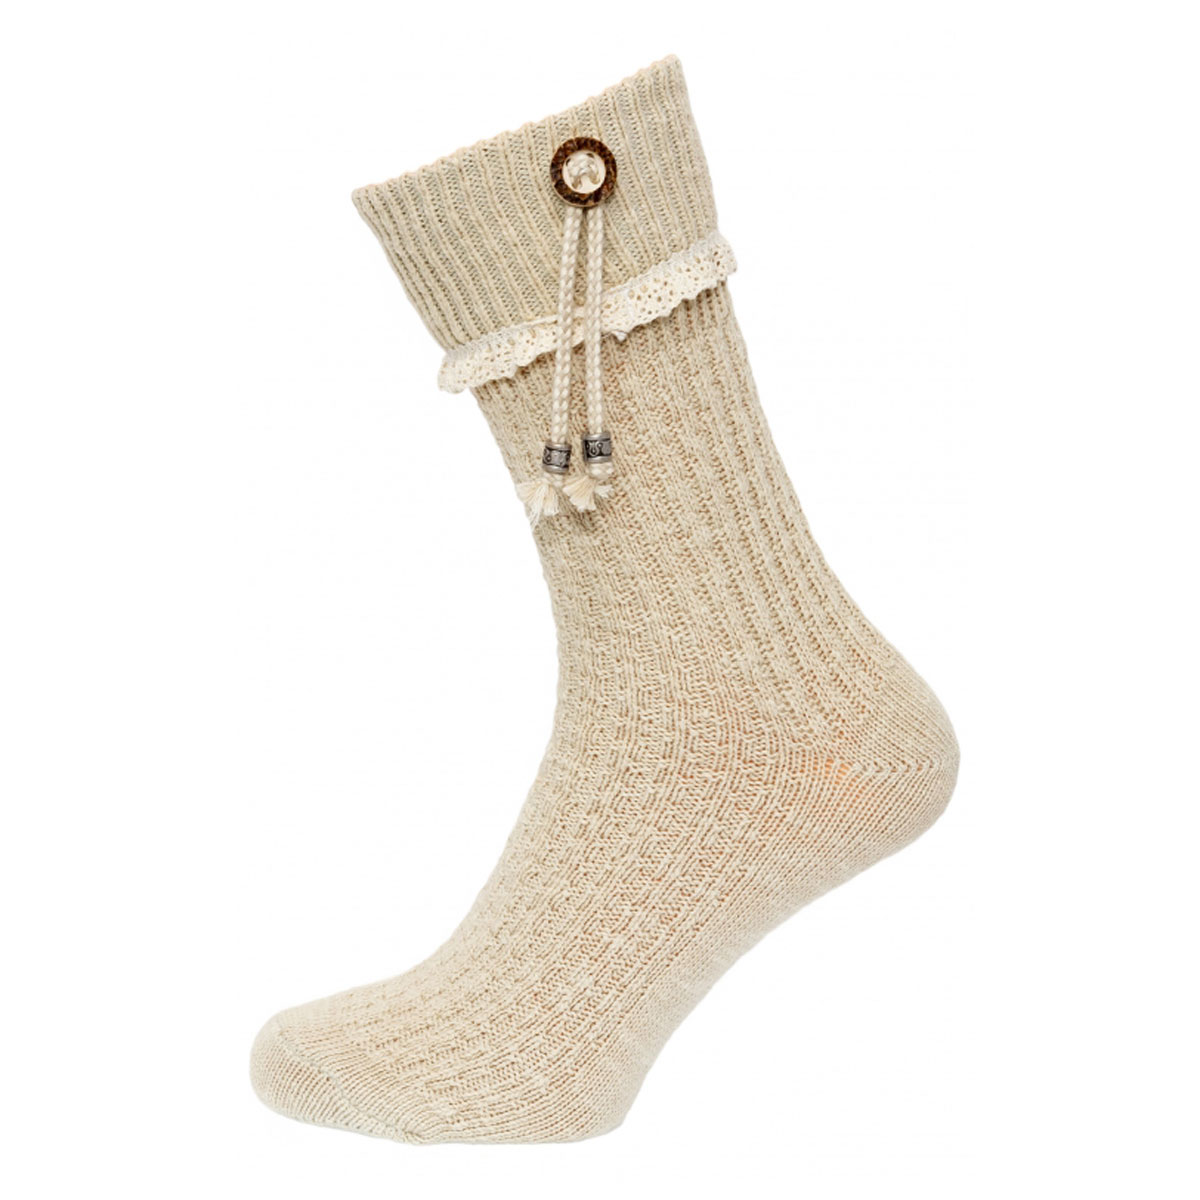 LIGHT BROWN FEMALE SOCKS WITH UNIQUE LACES